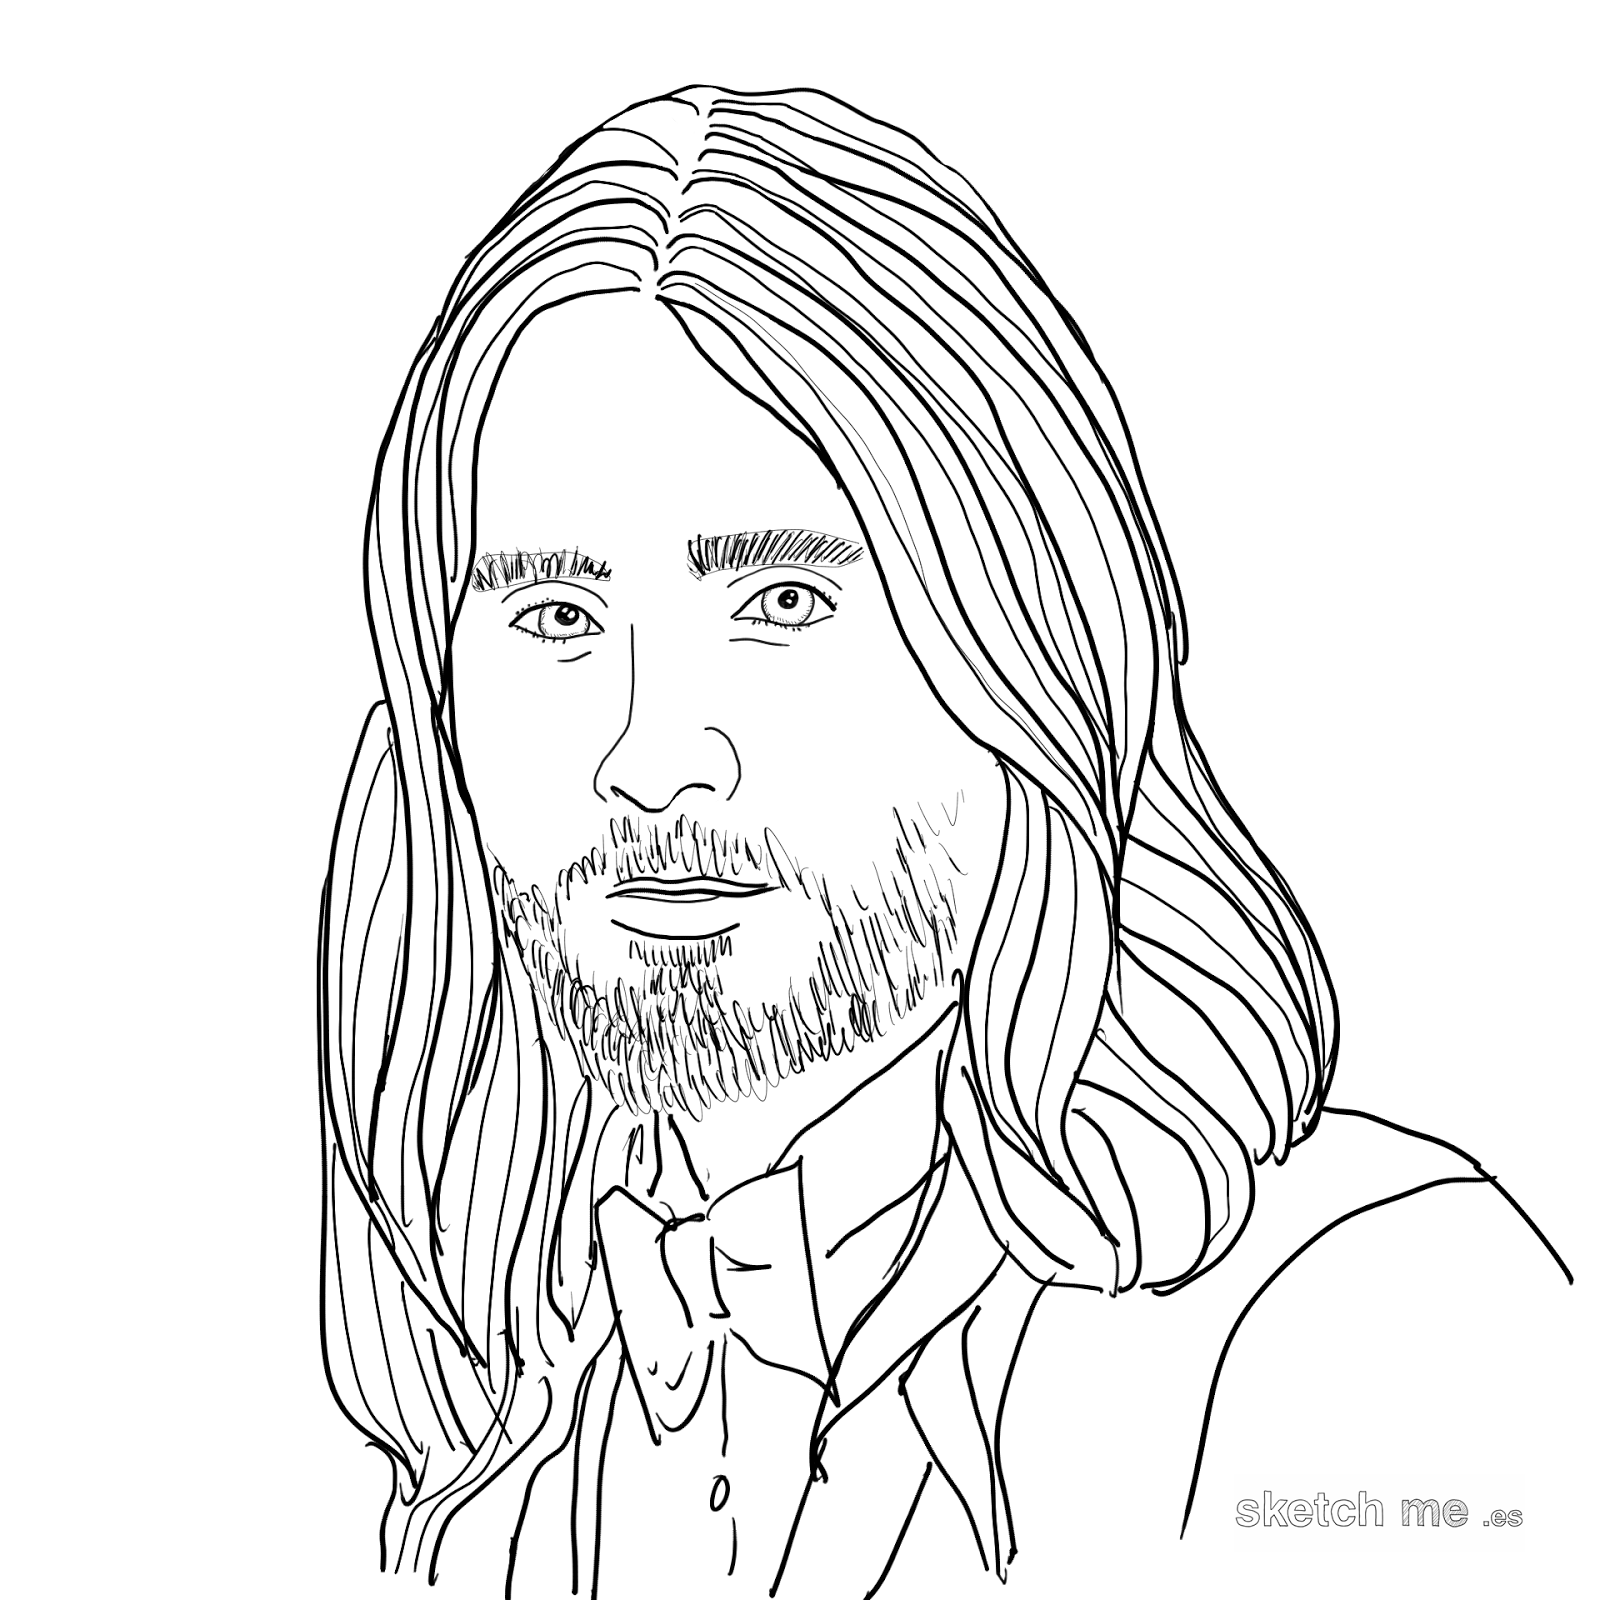 jared-leto-sketch-me-custom-protraits-for-facebook-and-twitter-profiles